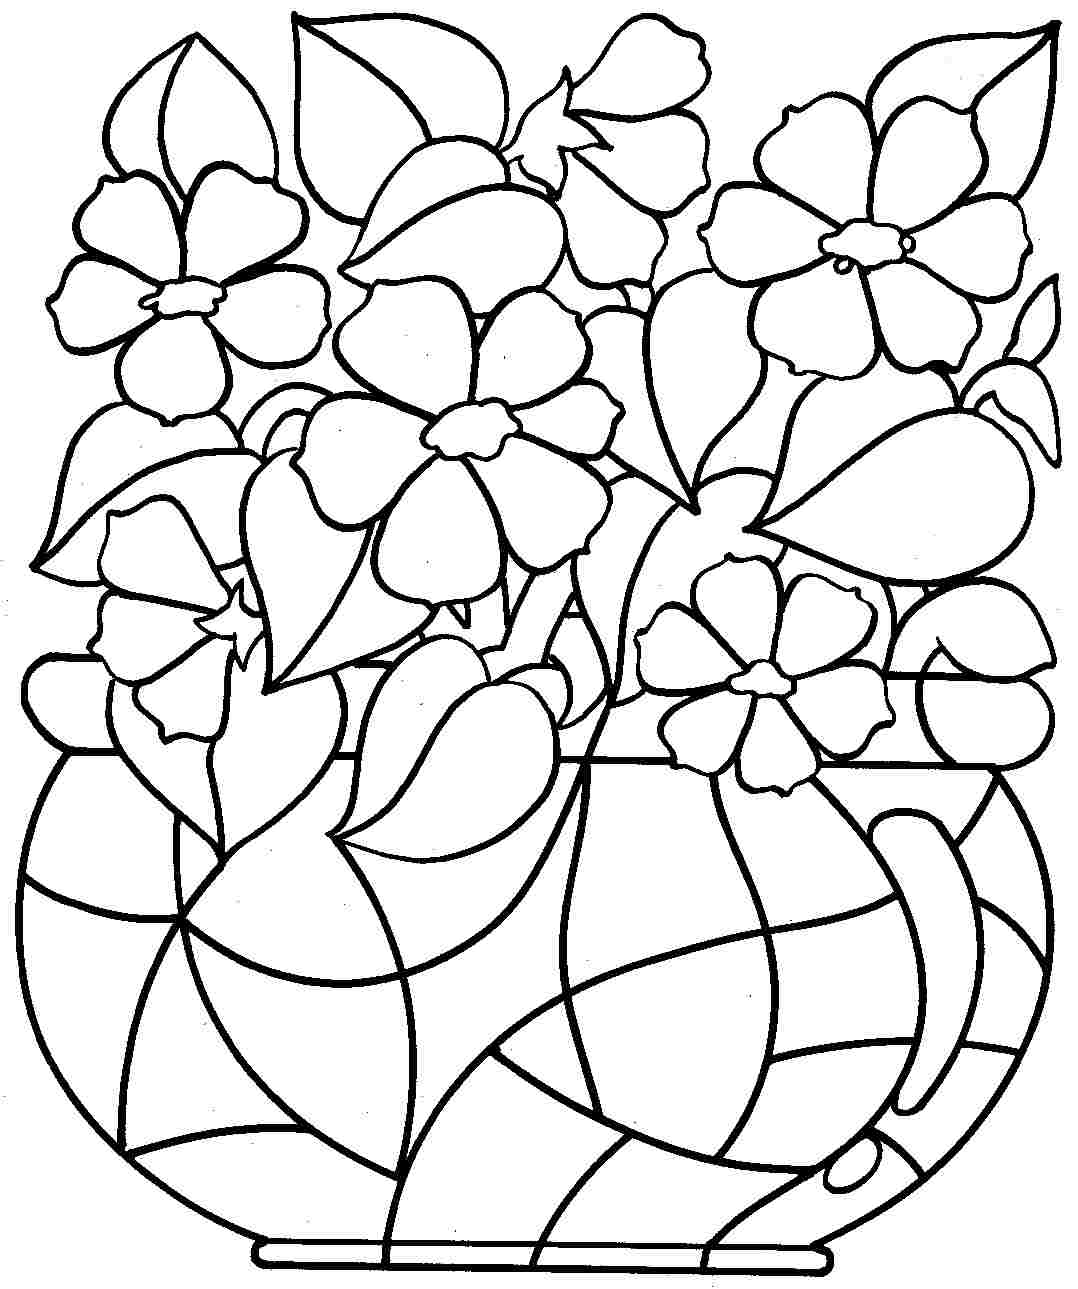 Spring coloring pages free printable - Beautiful Spring Coloring Pages For Adults Coloring Pages For